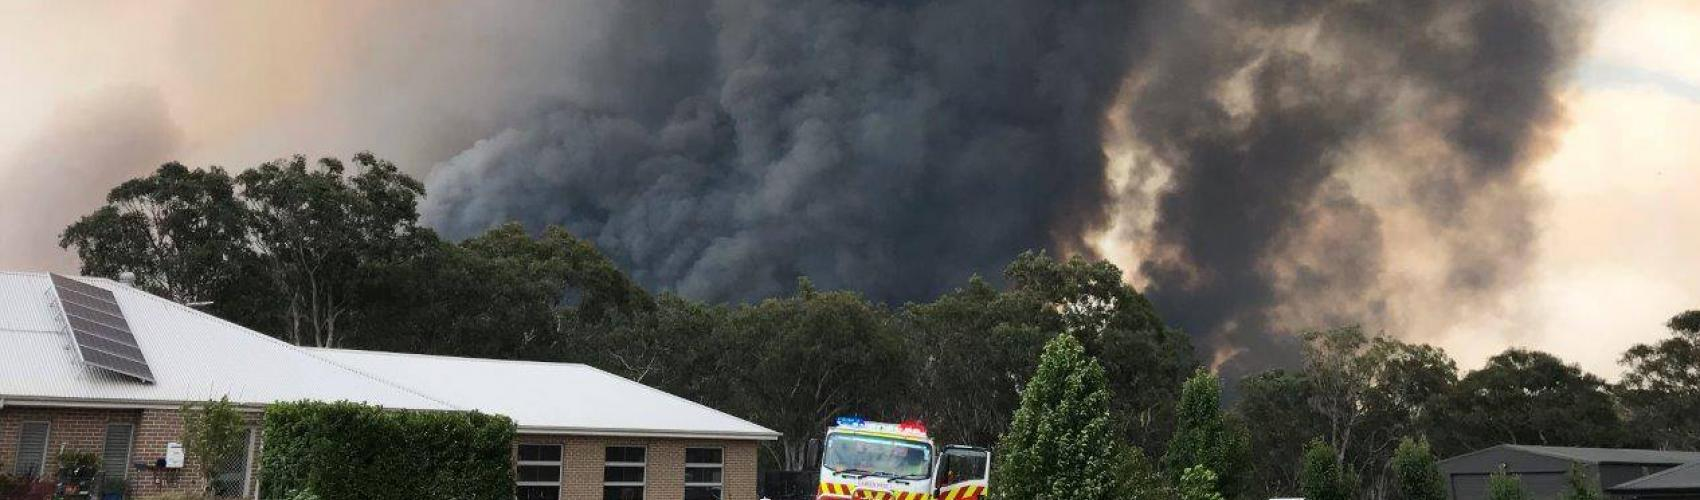 The Morton fire in NSW threatens homes. Photo: NSW Rural Fire Service.